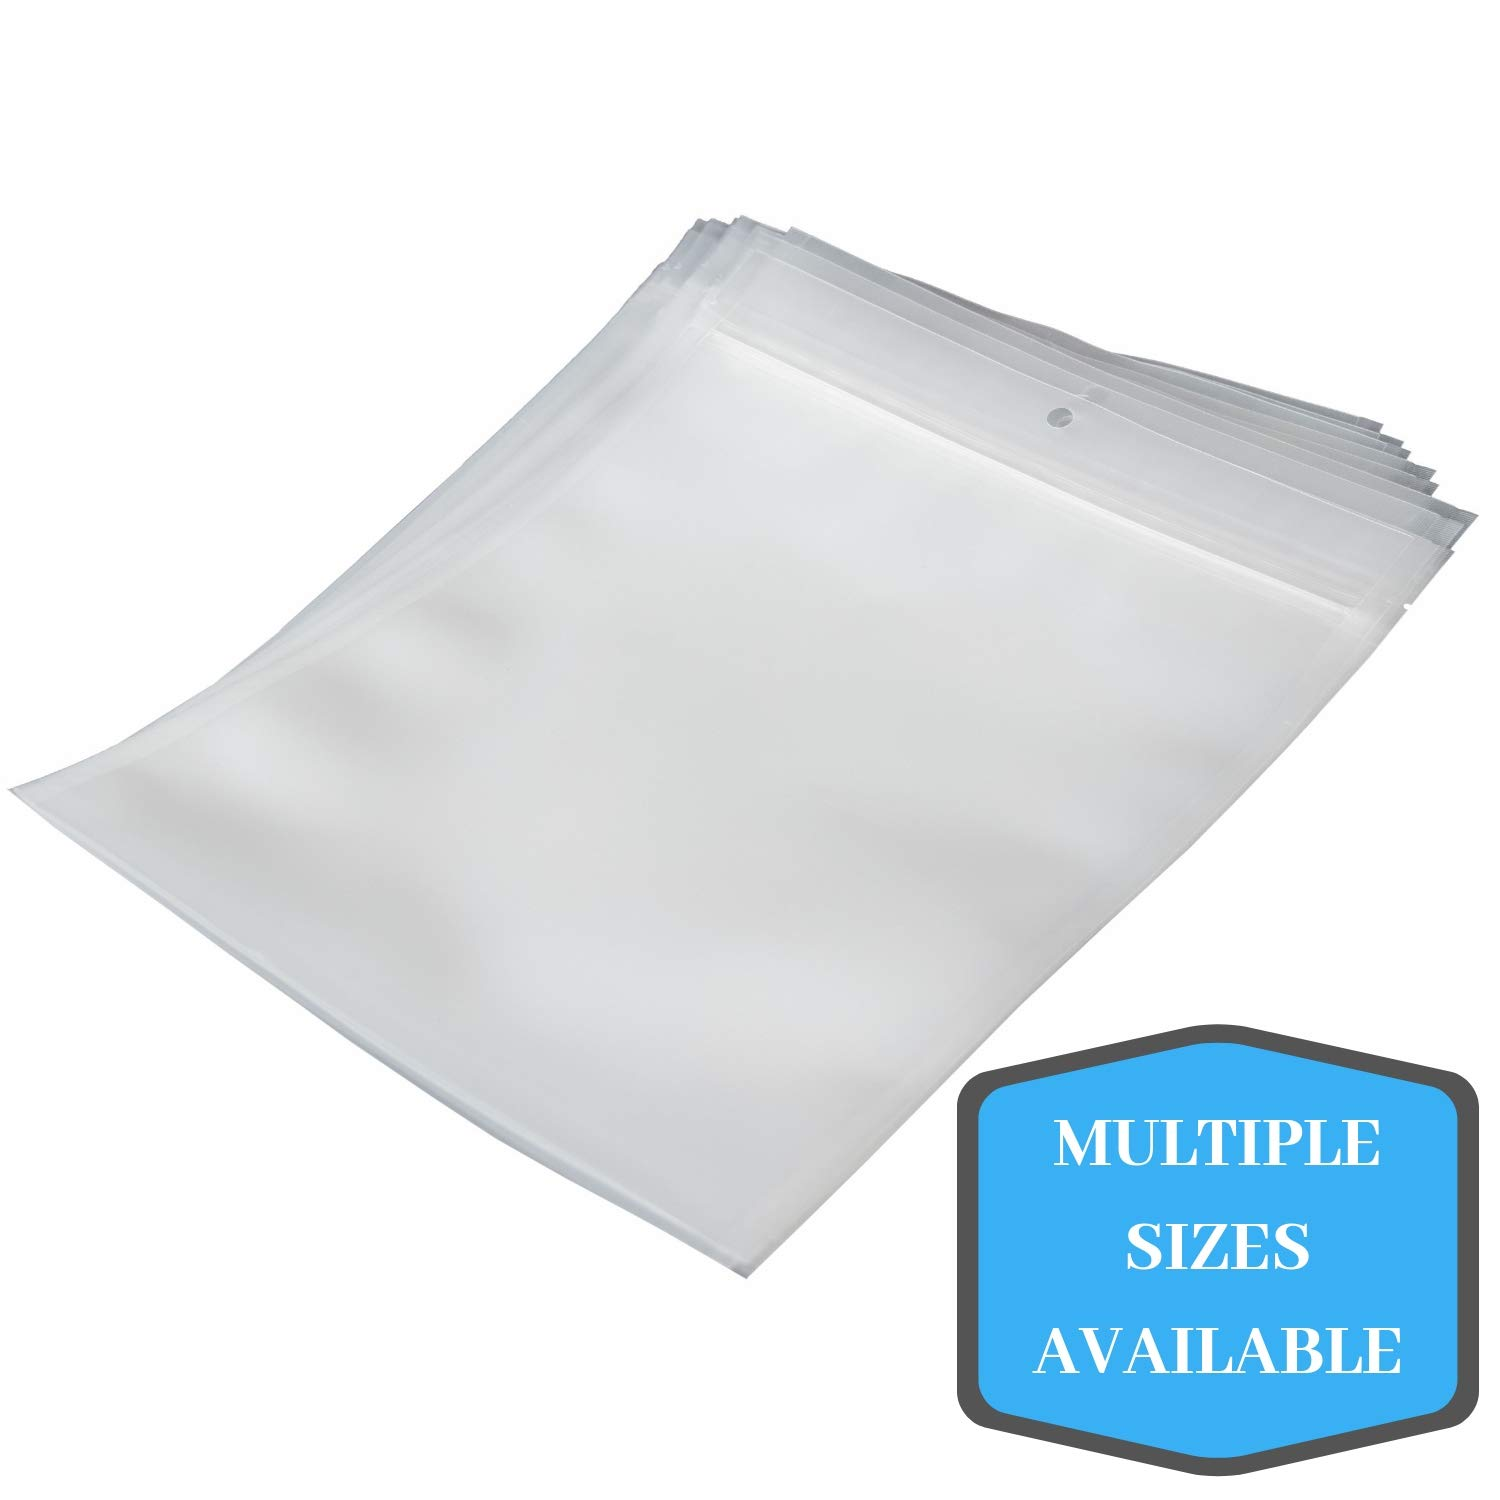 Vacuum Chamber Zipper Pouches - (8 x 14) - 4 Mil - 500/CS - Bottom Fill with Hang-hole by Online Packaging Solutions